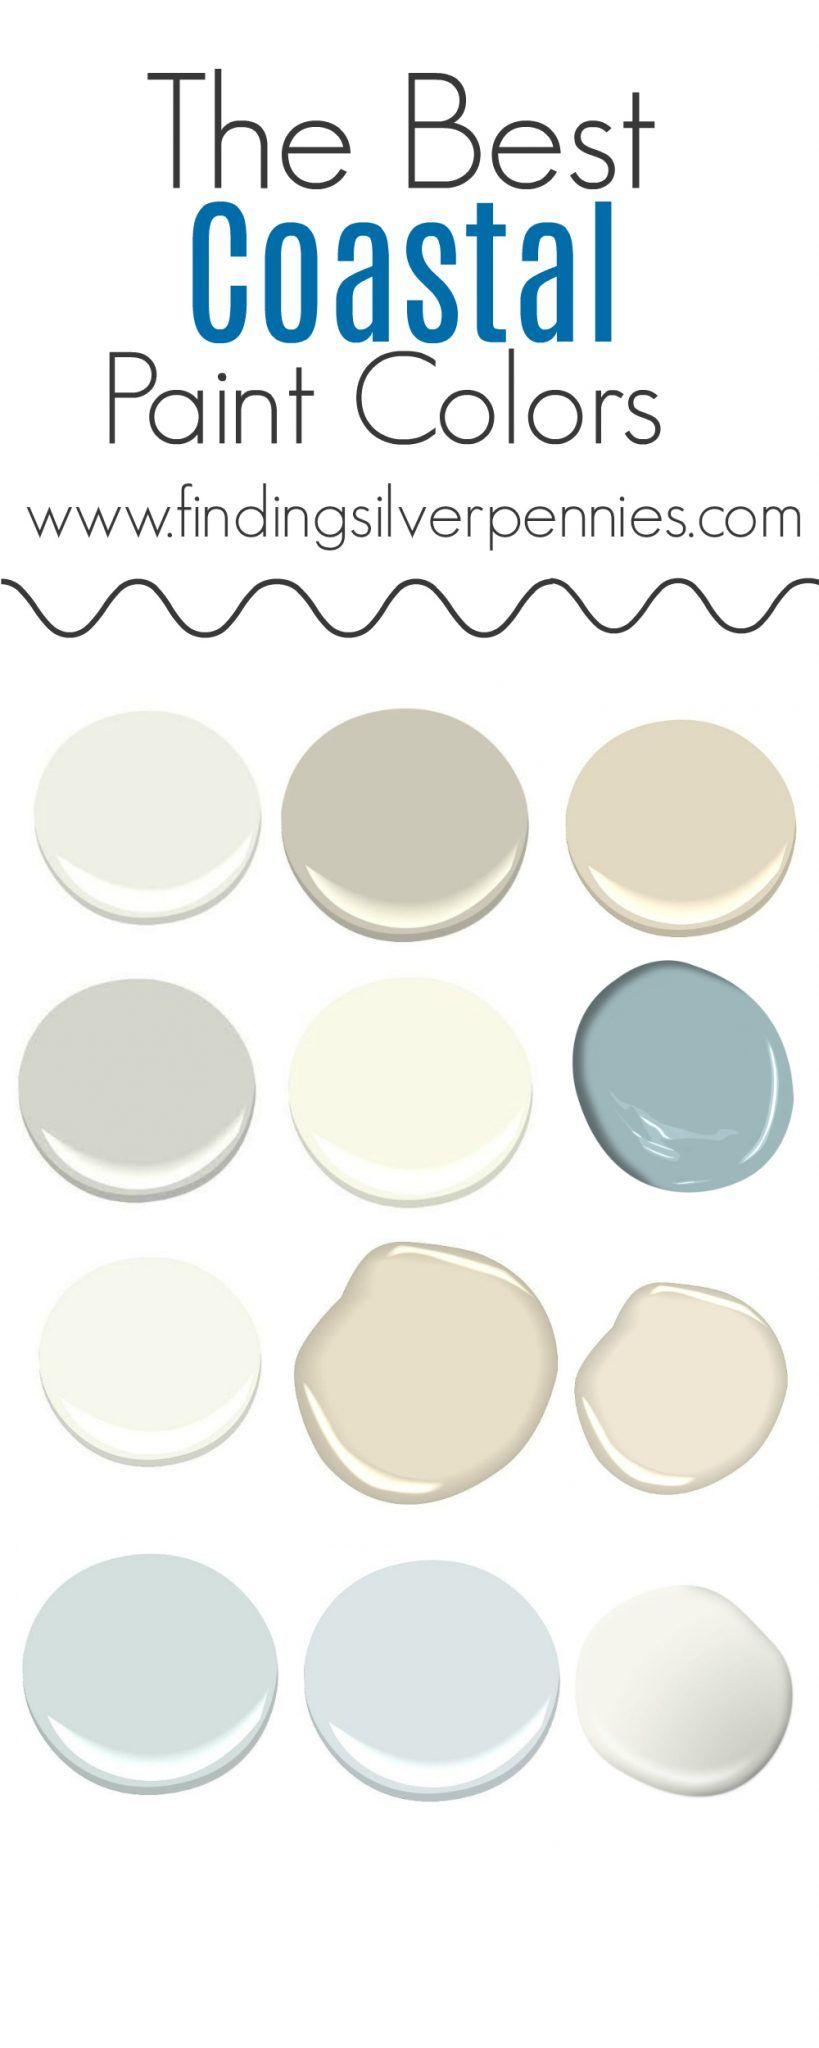 Delicieux The Best Coastal Paint Colors I Finding Silver Pennies